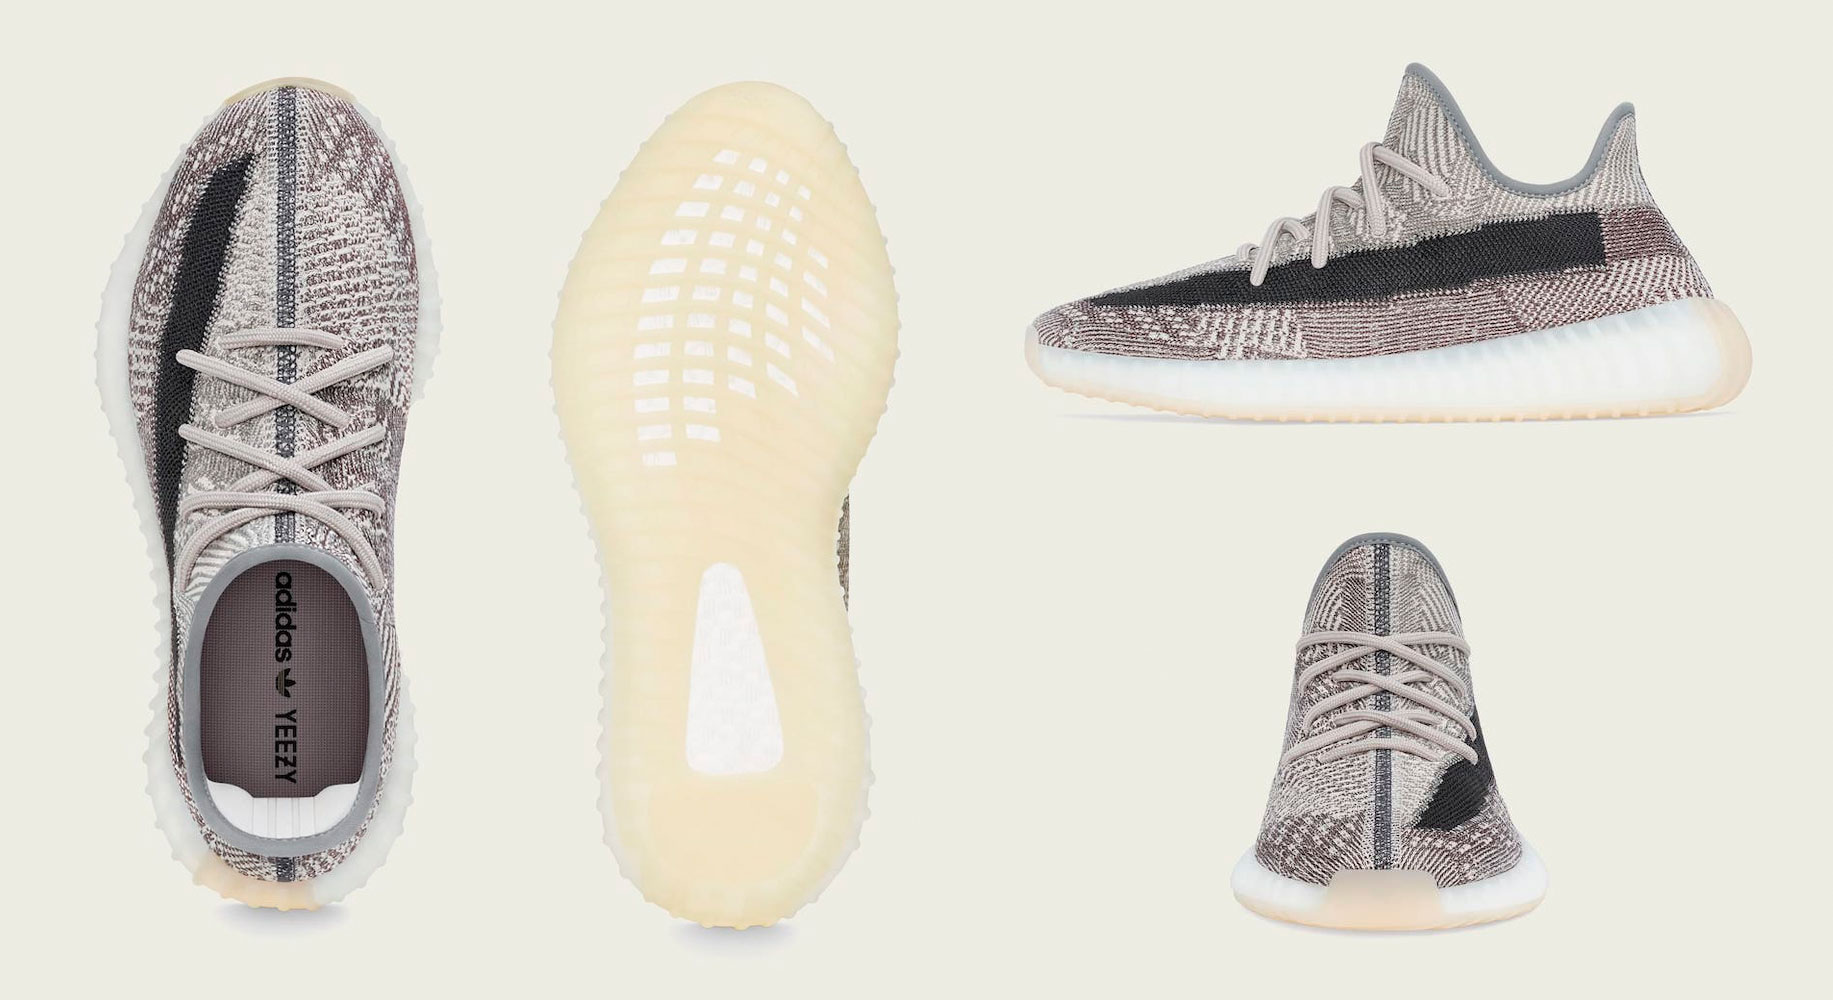 yeezy-boost-350-v2-zyon-release-date-price